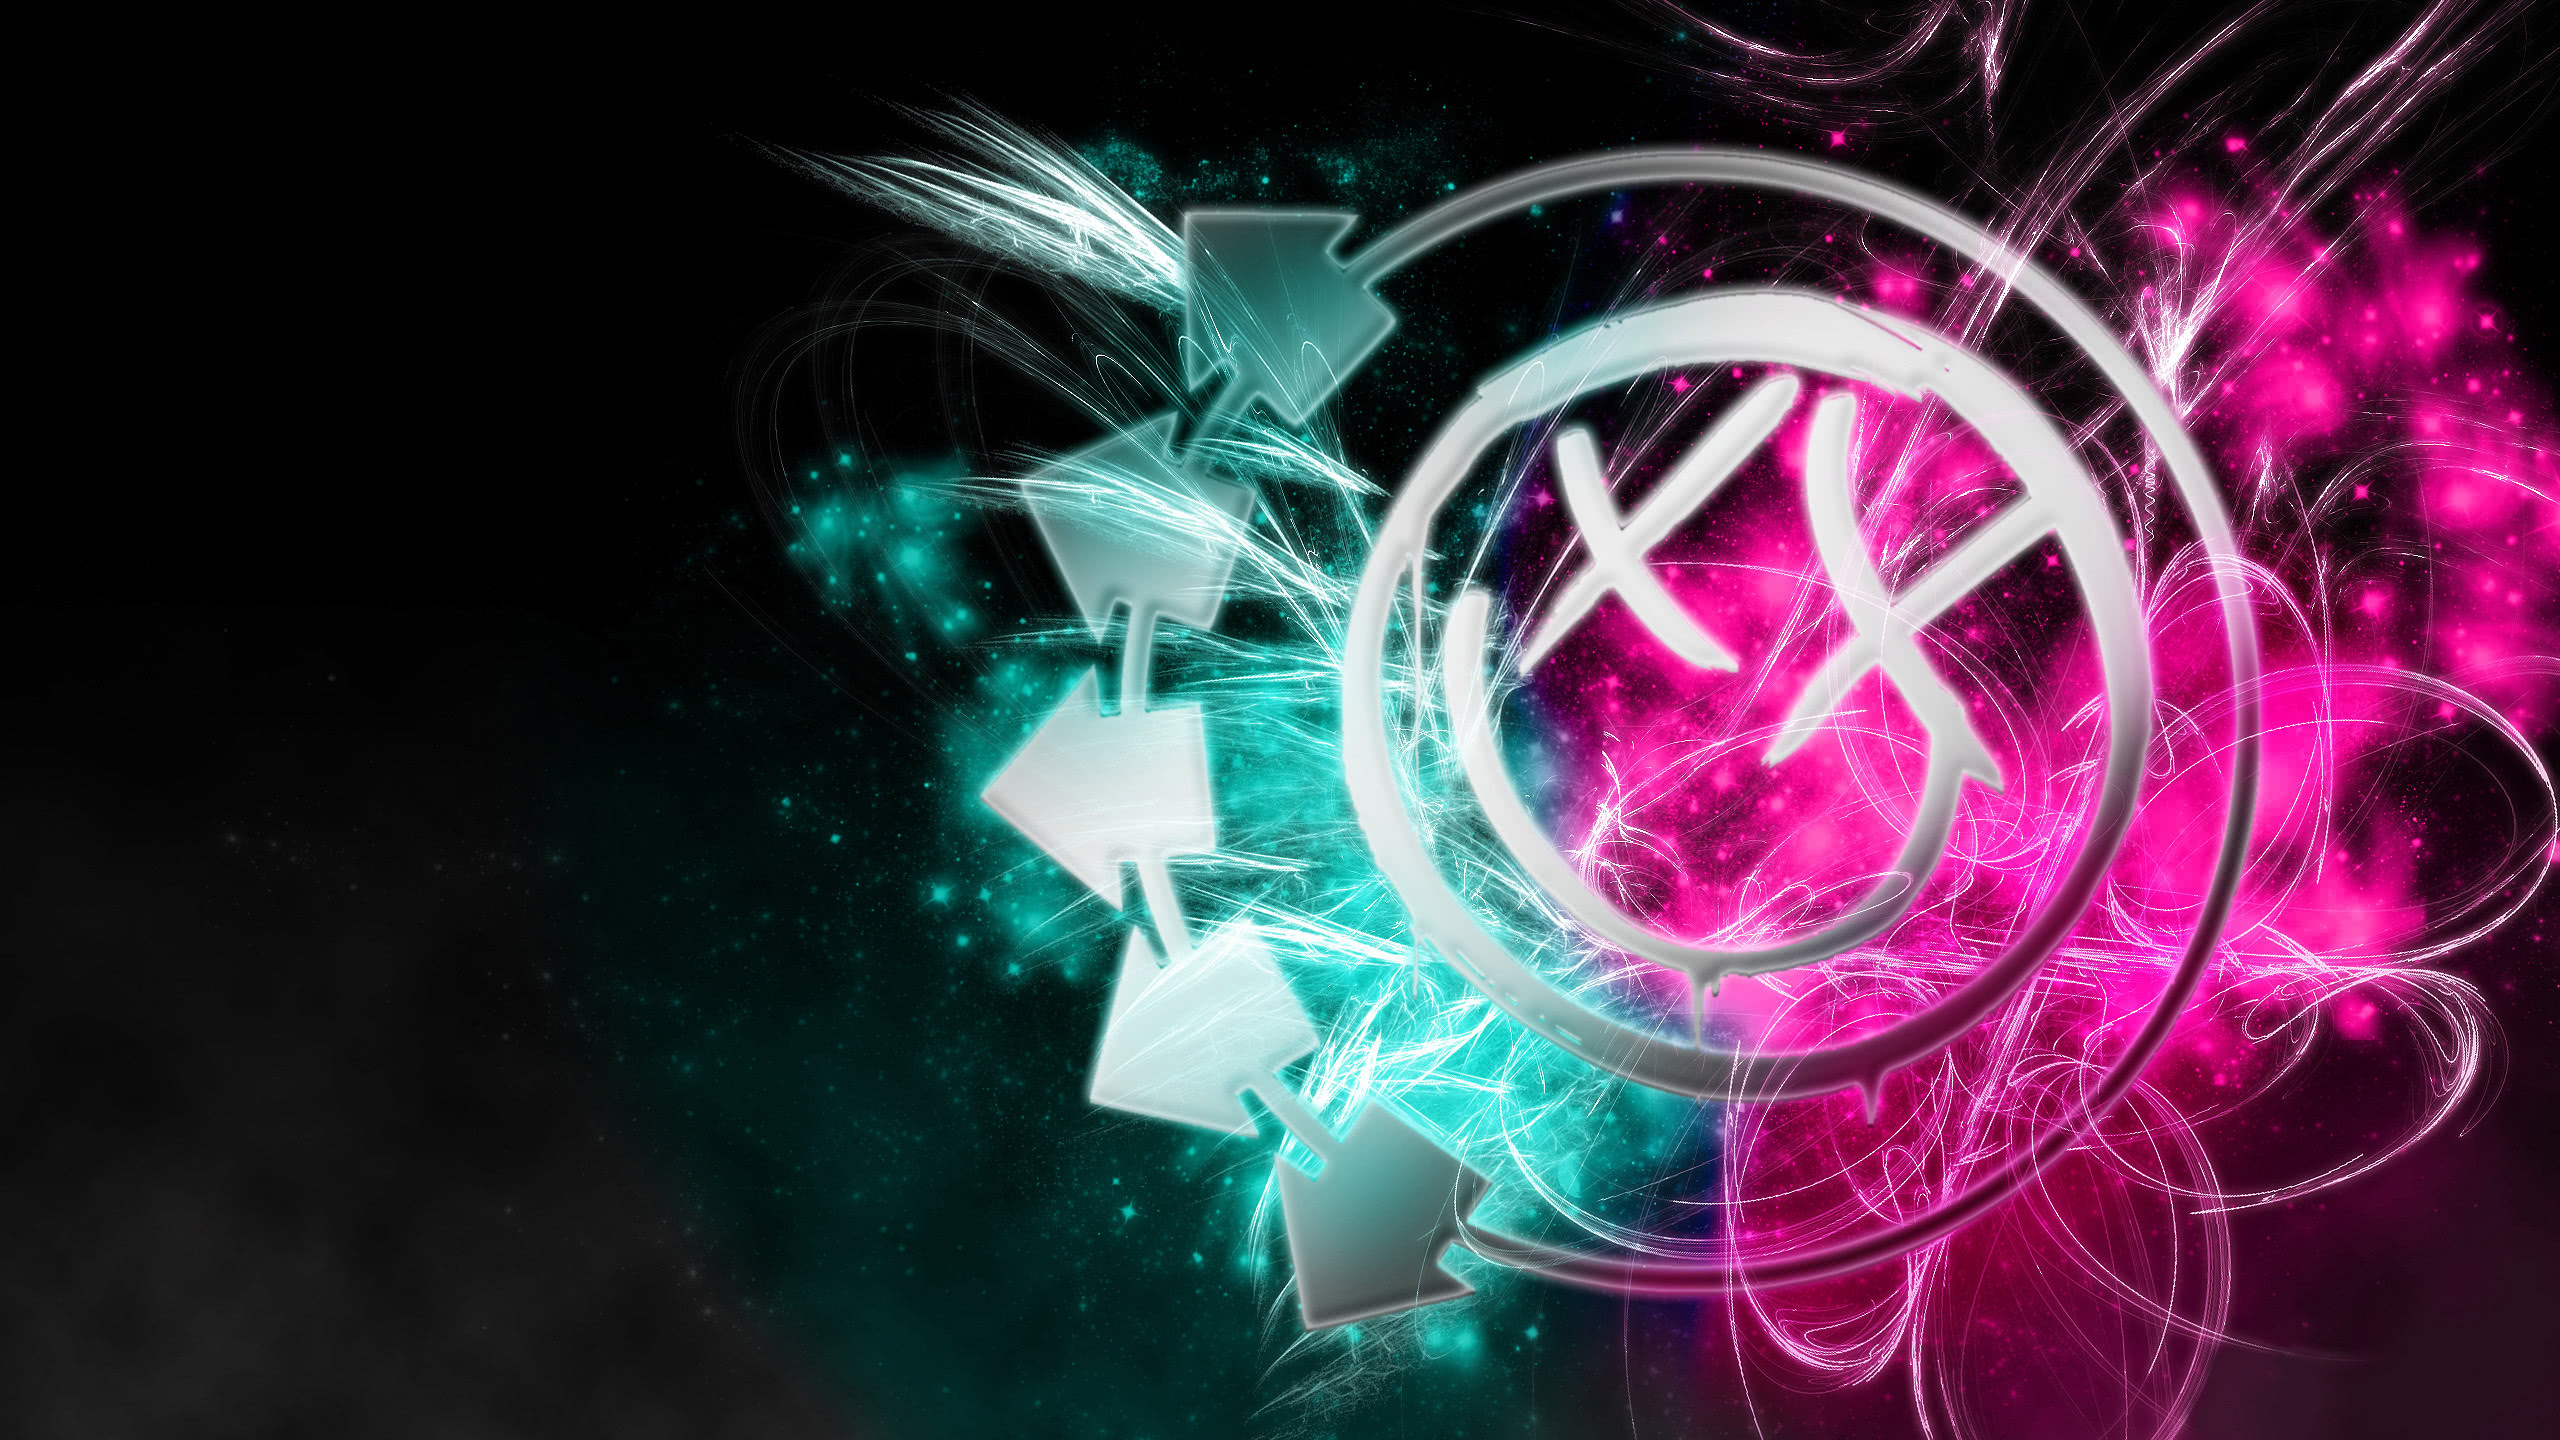 blink 182 logo wqhd 1440p wallpaper